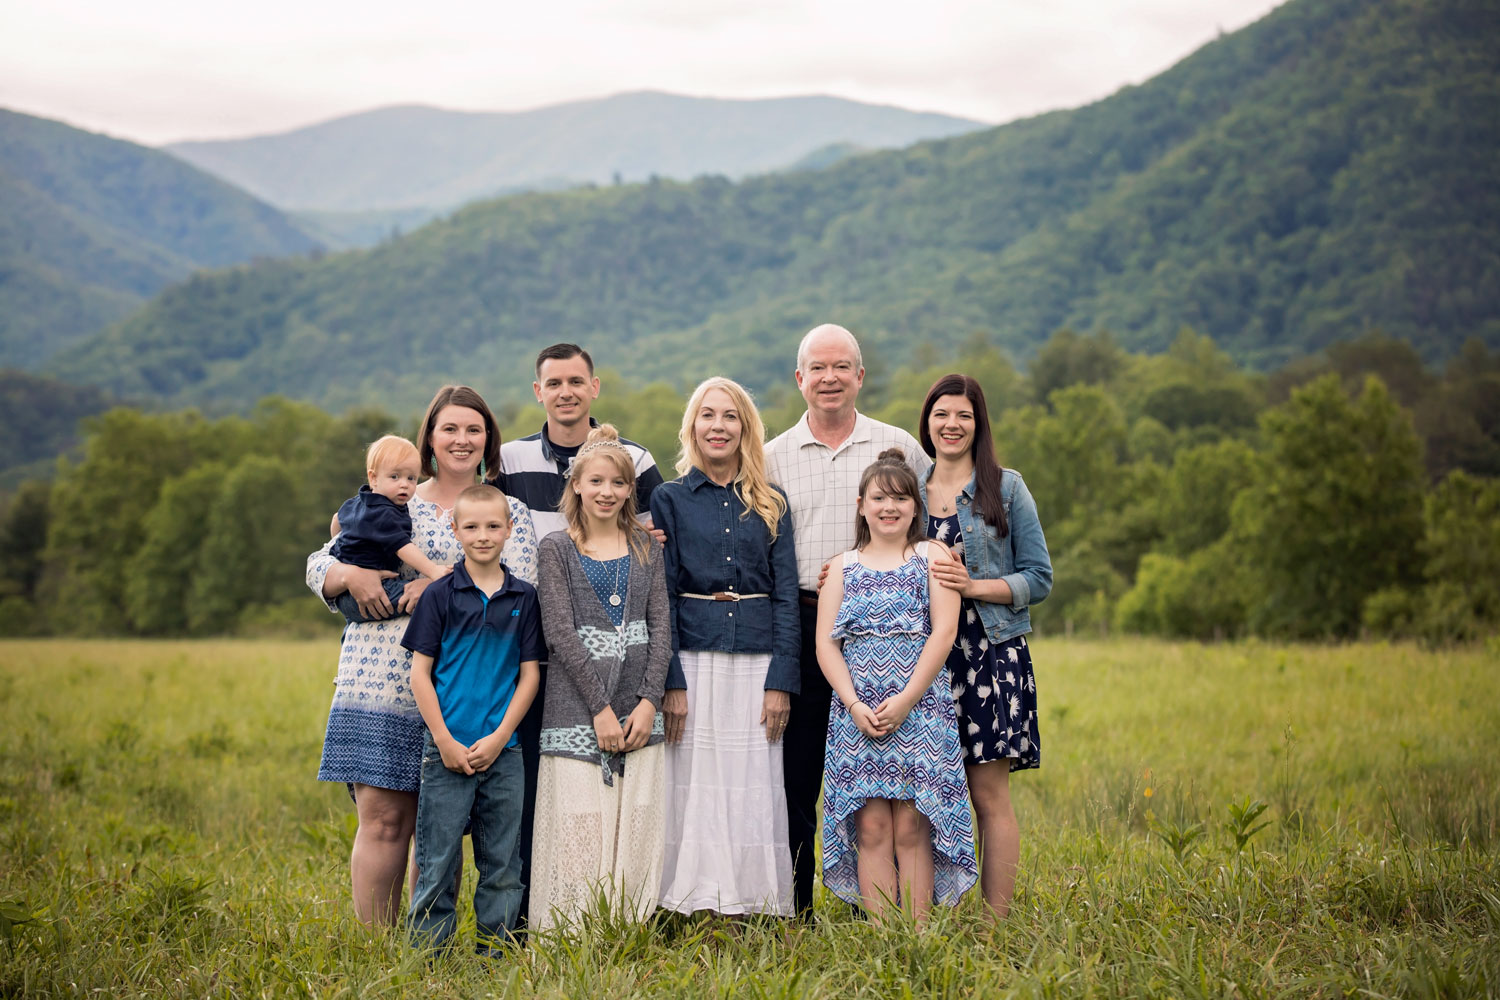 Pigeon-Forge-and-Gatlinburg-Photographer-Family-Reunion-portrait.jpg